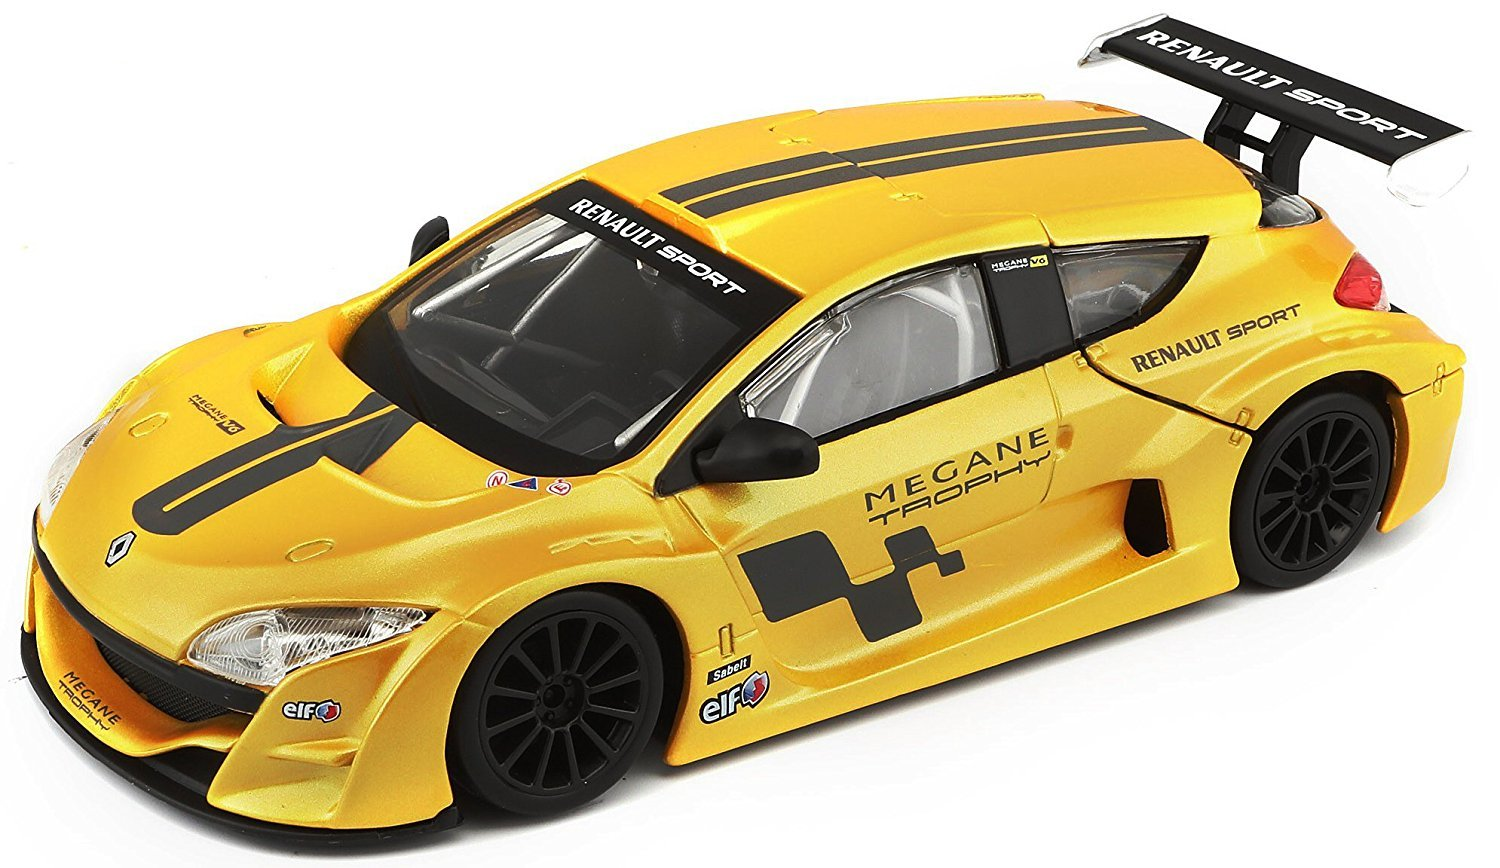 Model Building Kits Lovely Bburago 1:24 Renault Megane Trophy Yellow Assembly Diy Racing Diecast Model Kit Kits Car Toy New In Box Free Shipping 25097